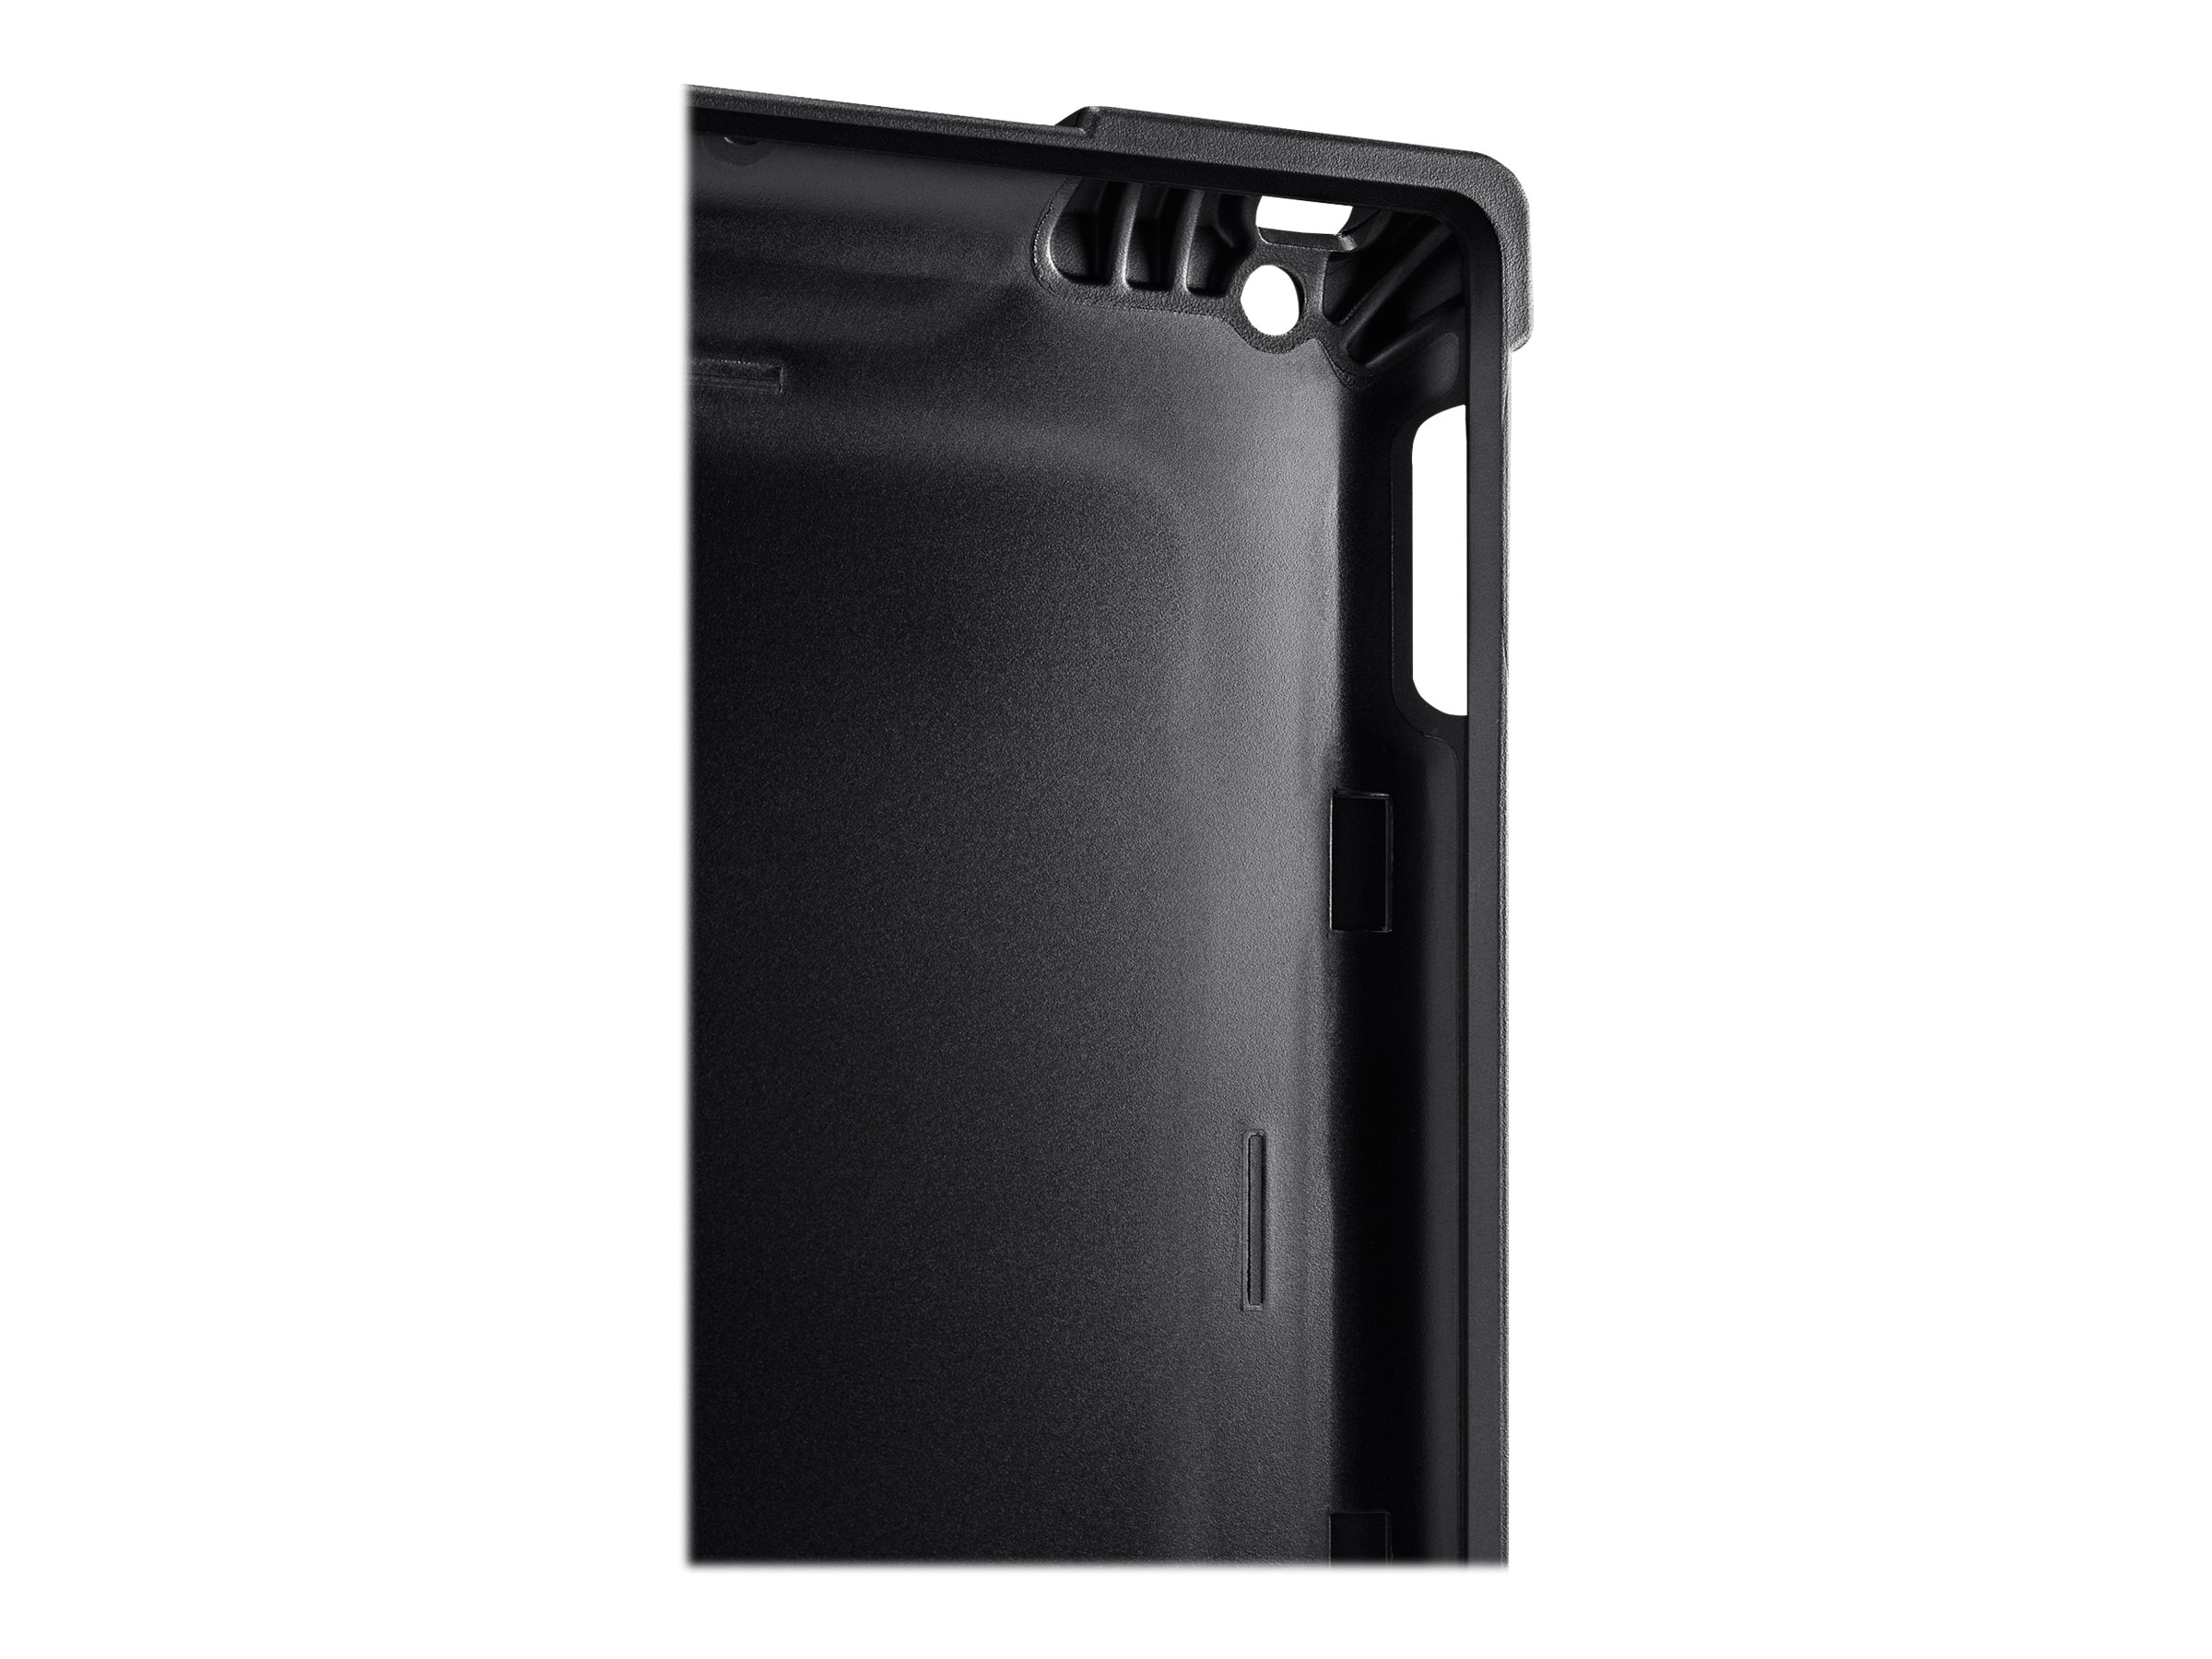 Belkin Air Shield Protective Case for iPad 2 3 4, Black, B2A060-C00